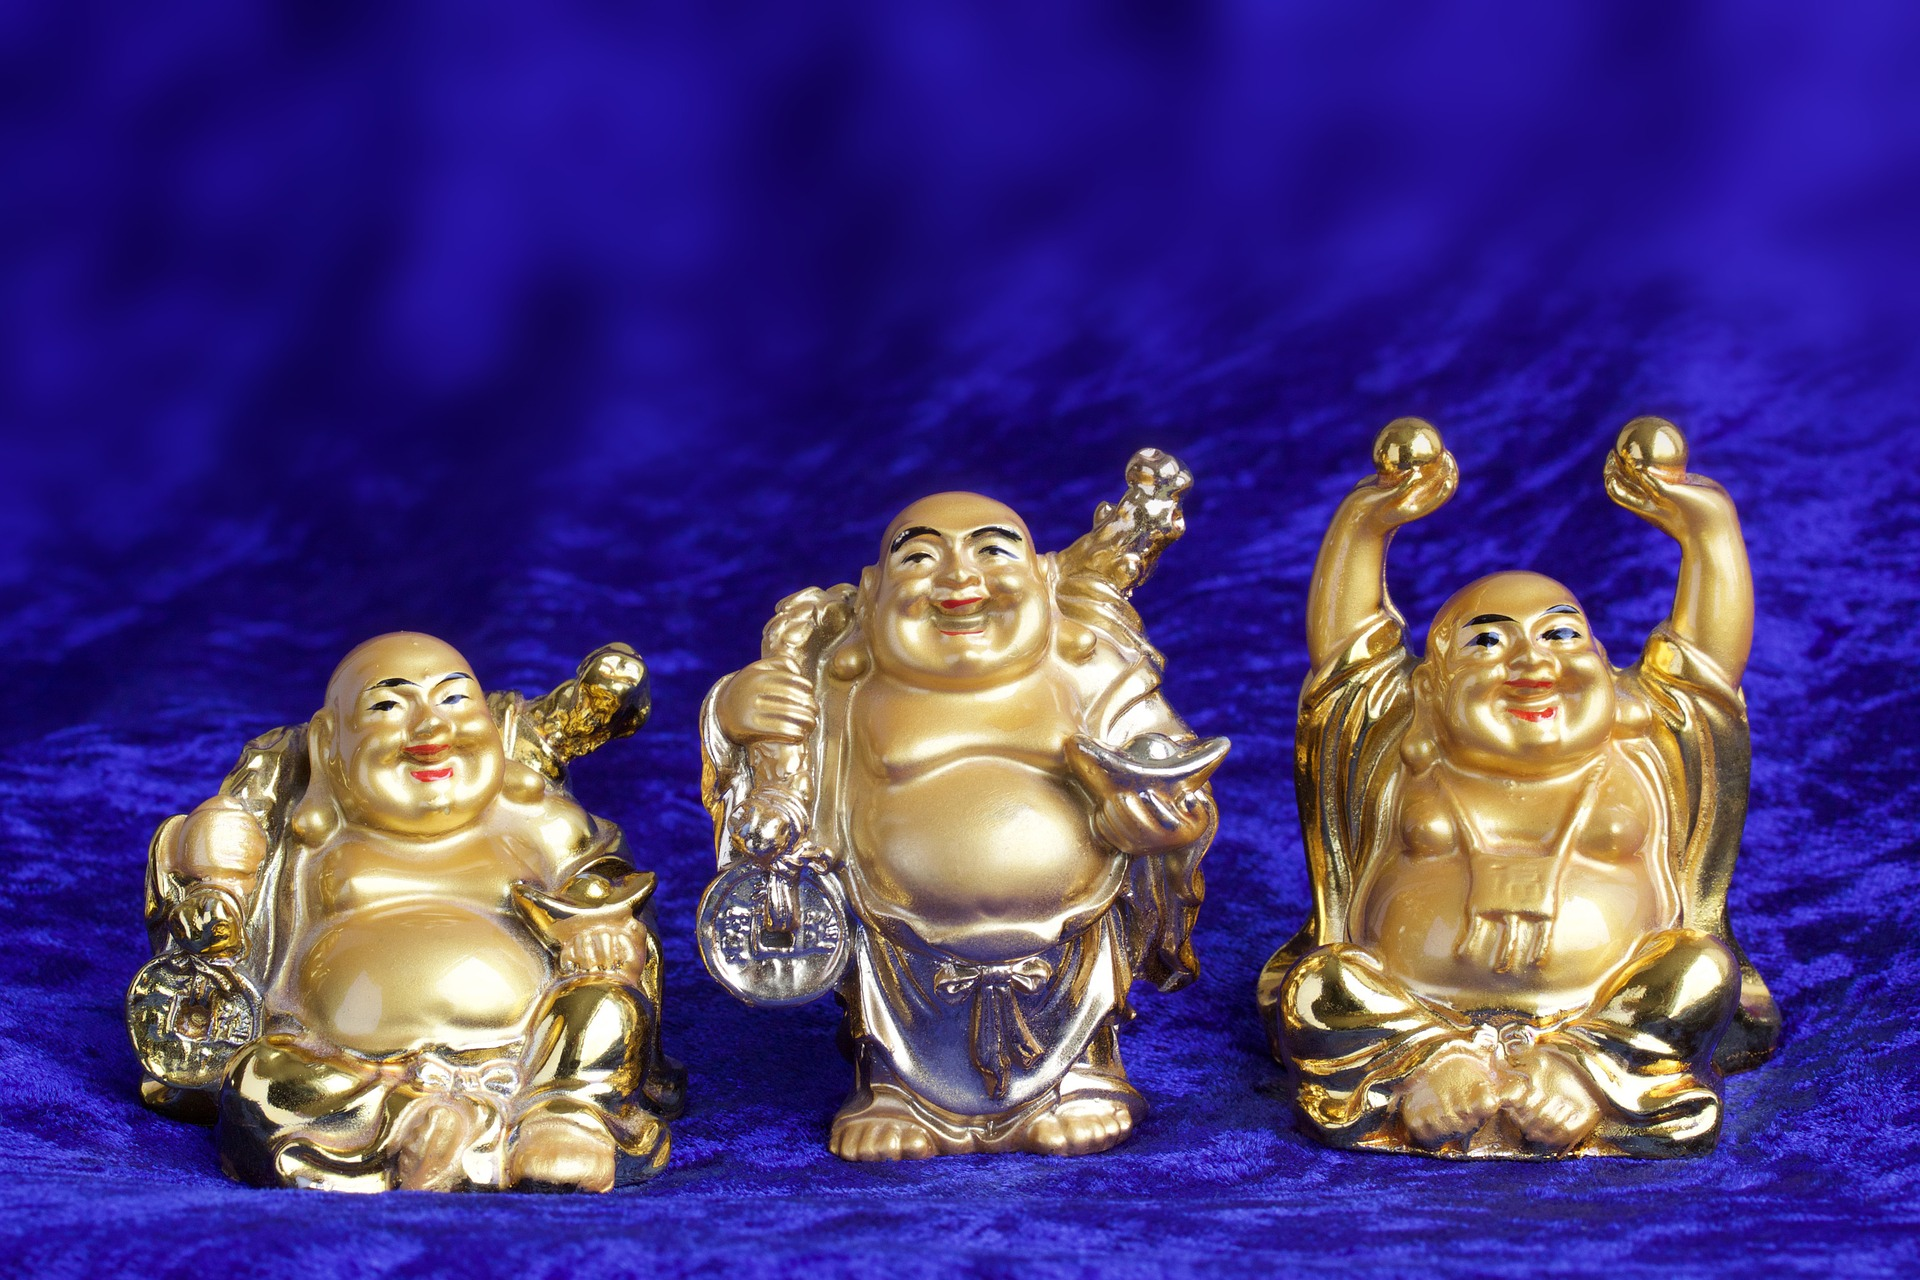 Laughing Buddha: 13 Amusing Trivias About The Bald, Stout Man Who Showers Good Luck